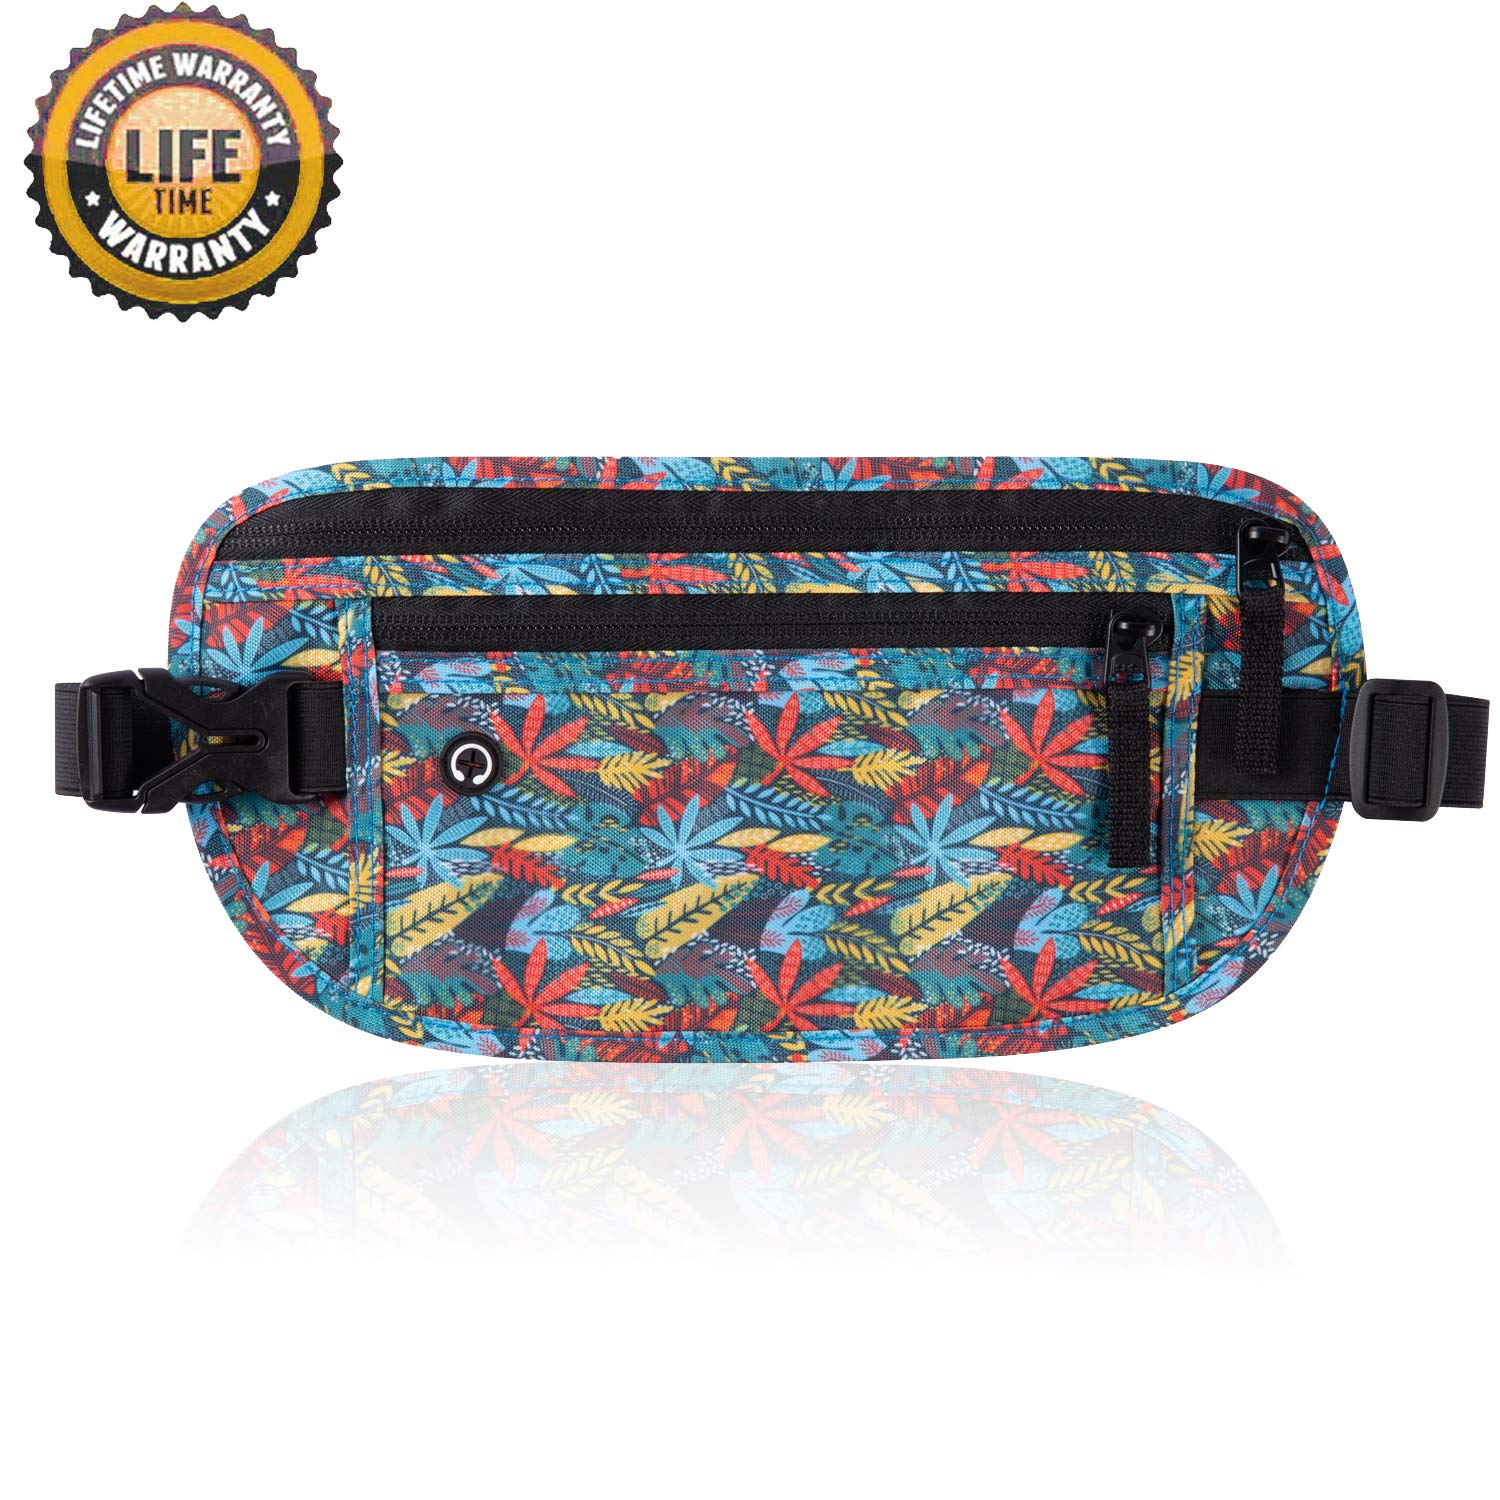 Goothdurs Travel Fanny Pack Money Belt Travel Wallet for Women and Men with RFID Blocking Slim Waist Bag (2020 New Model)